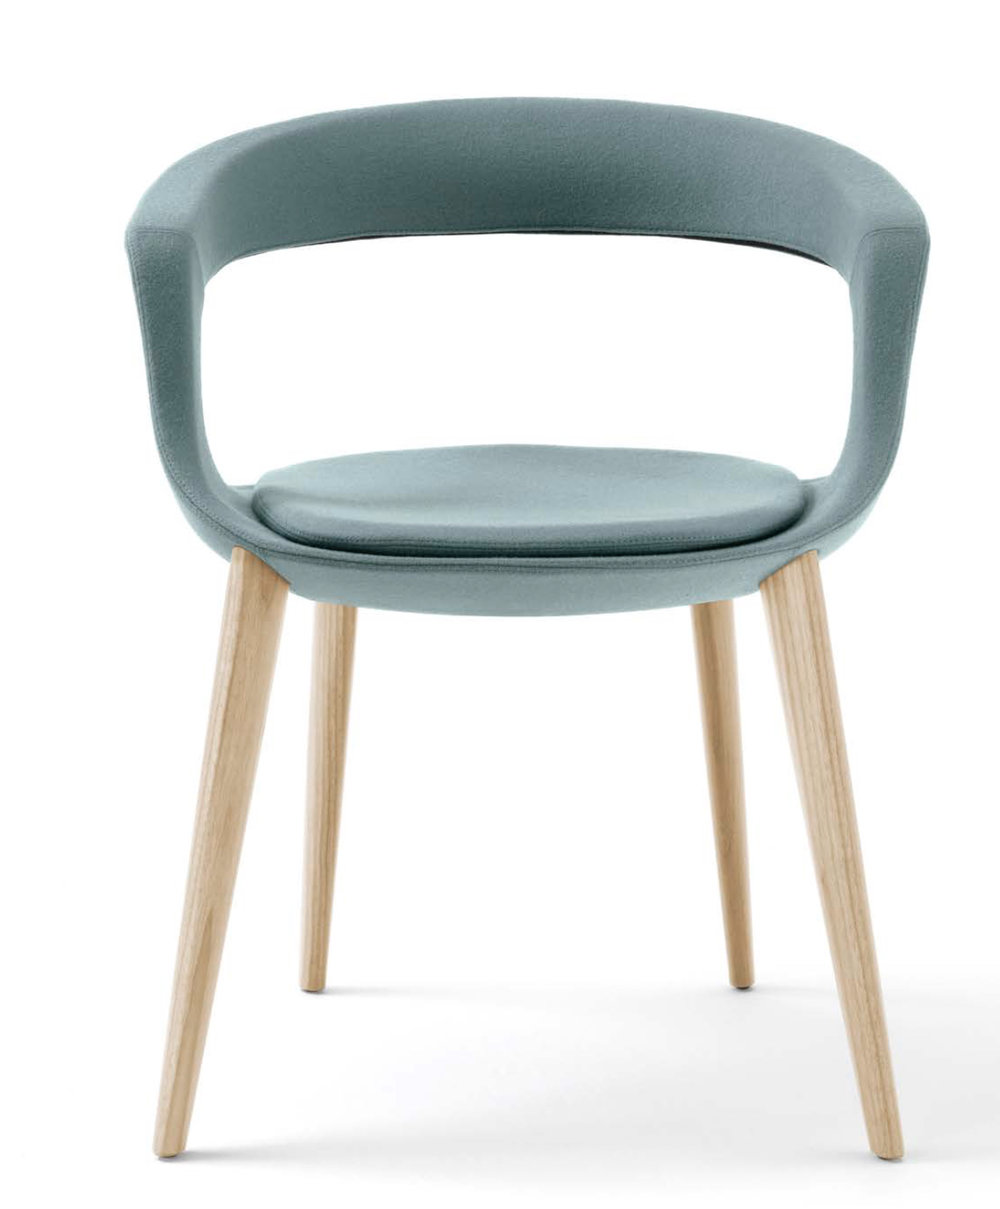 contemporary-stools-chairs-dining-leather-modern-designer-chairs and stools00006.jpeg